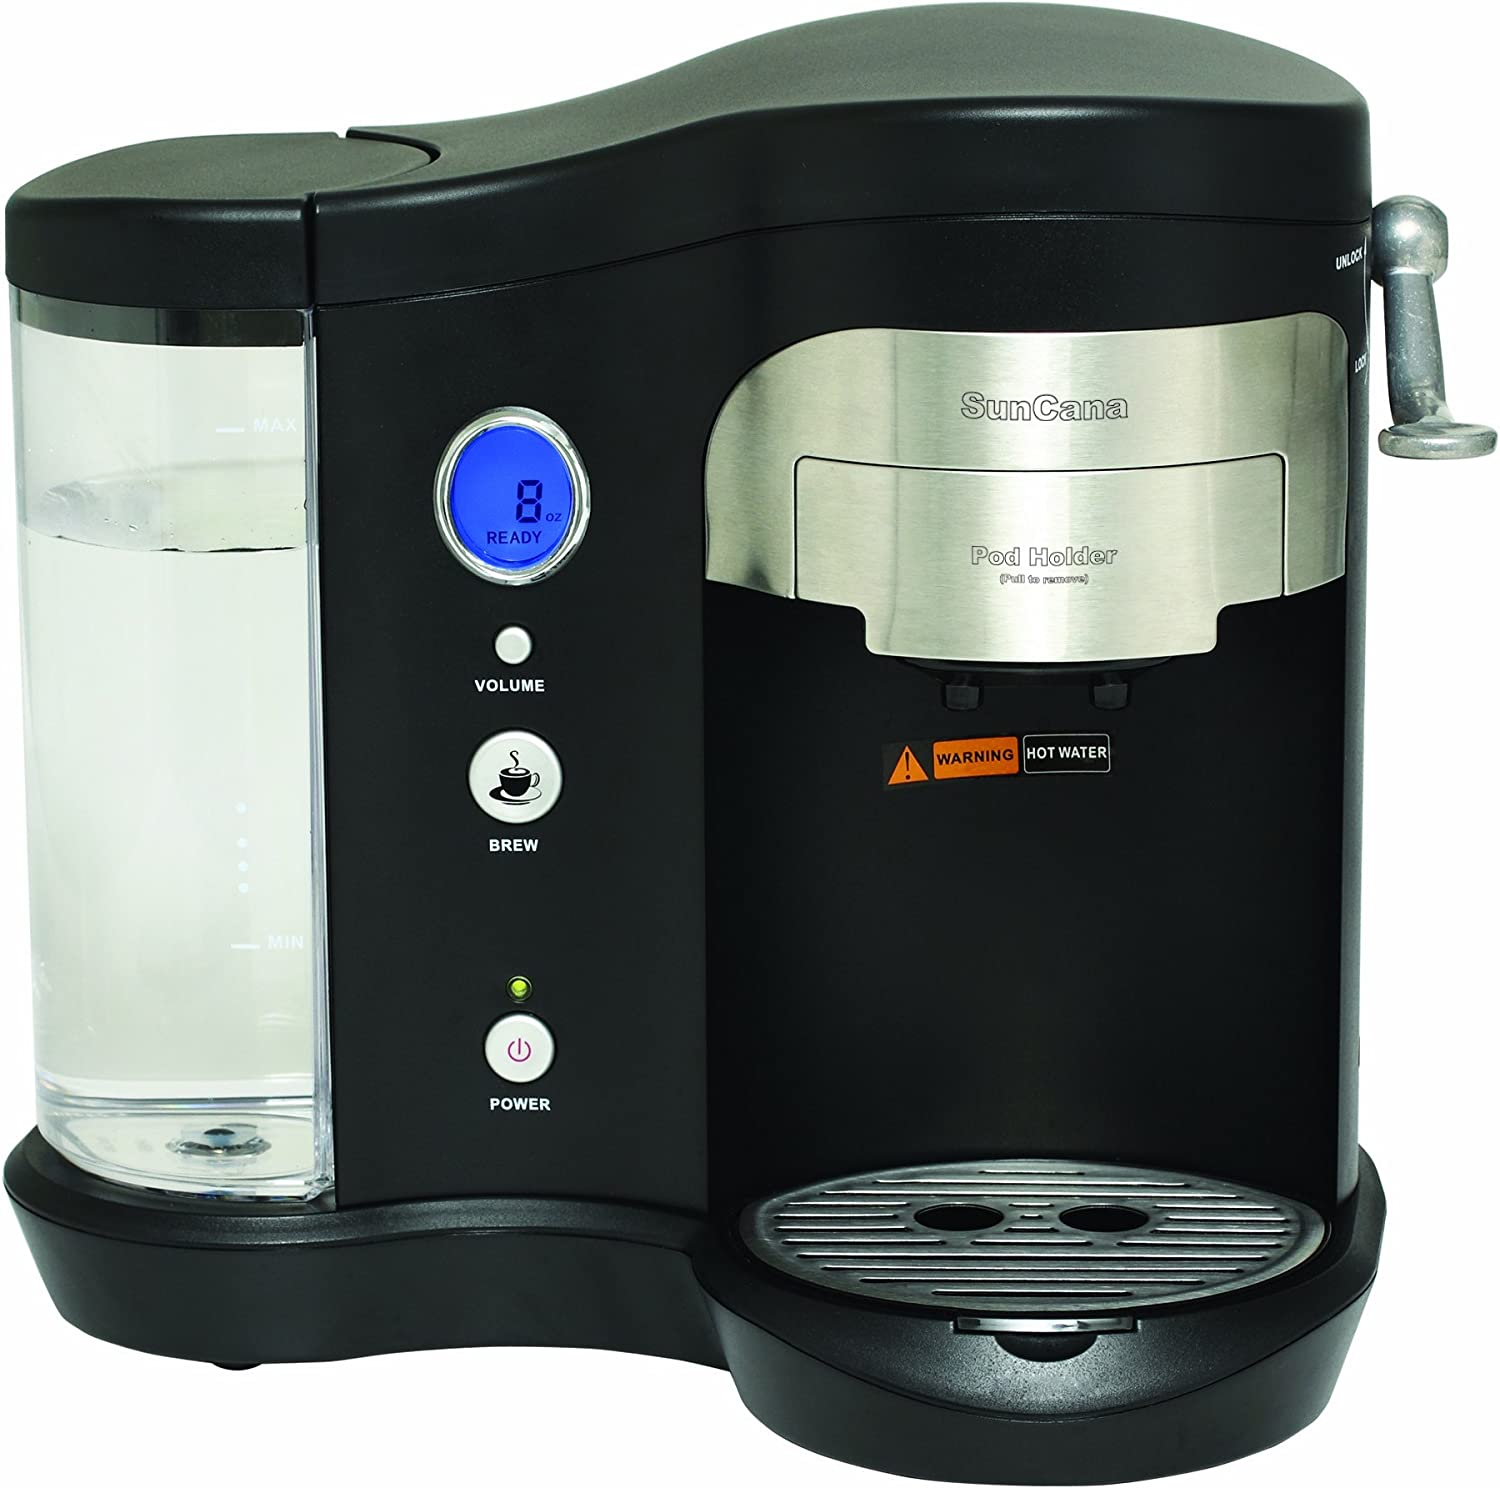 Suncana H701A-BLK Pod Brewer, Black by SunCana: Amazon.es: Hogar